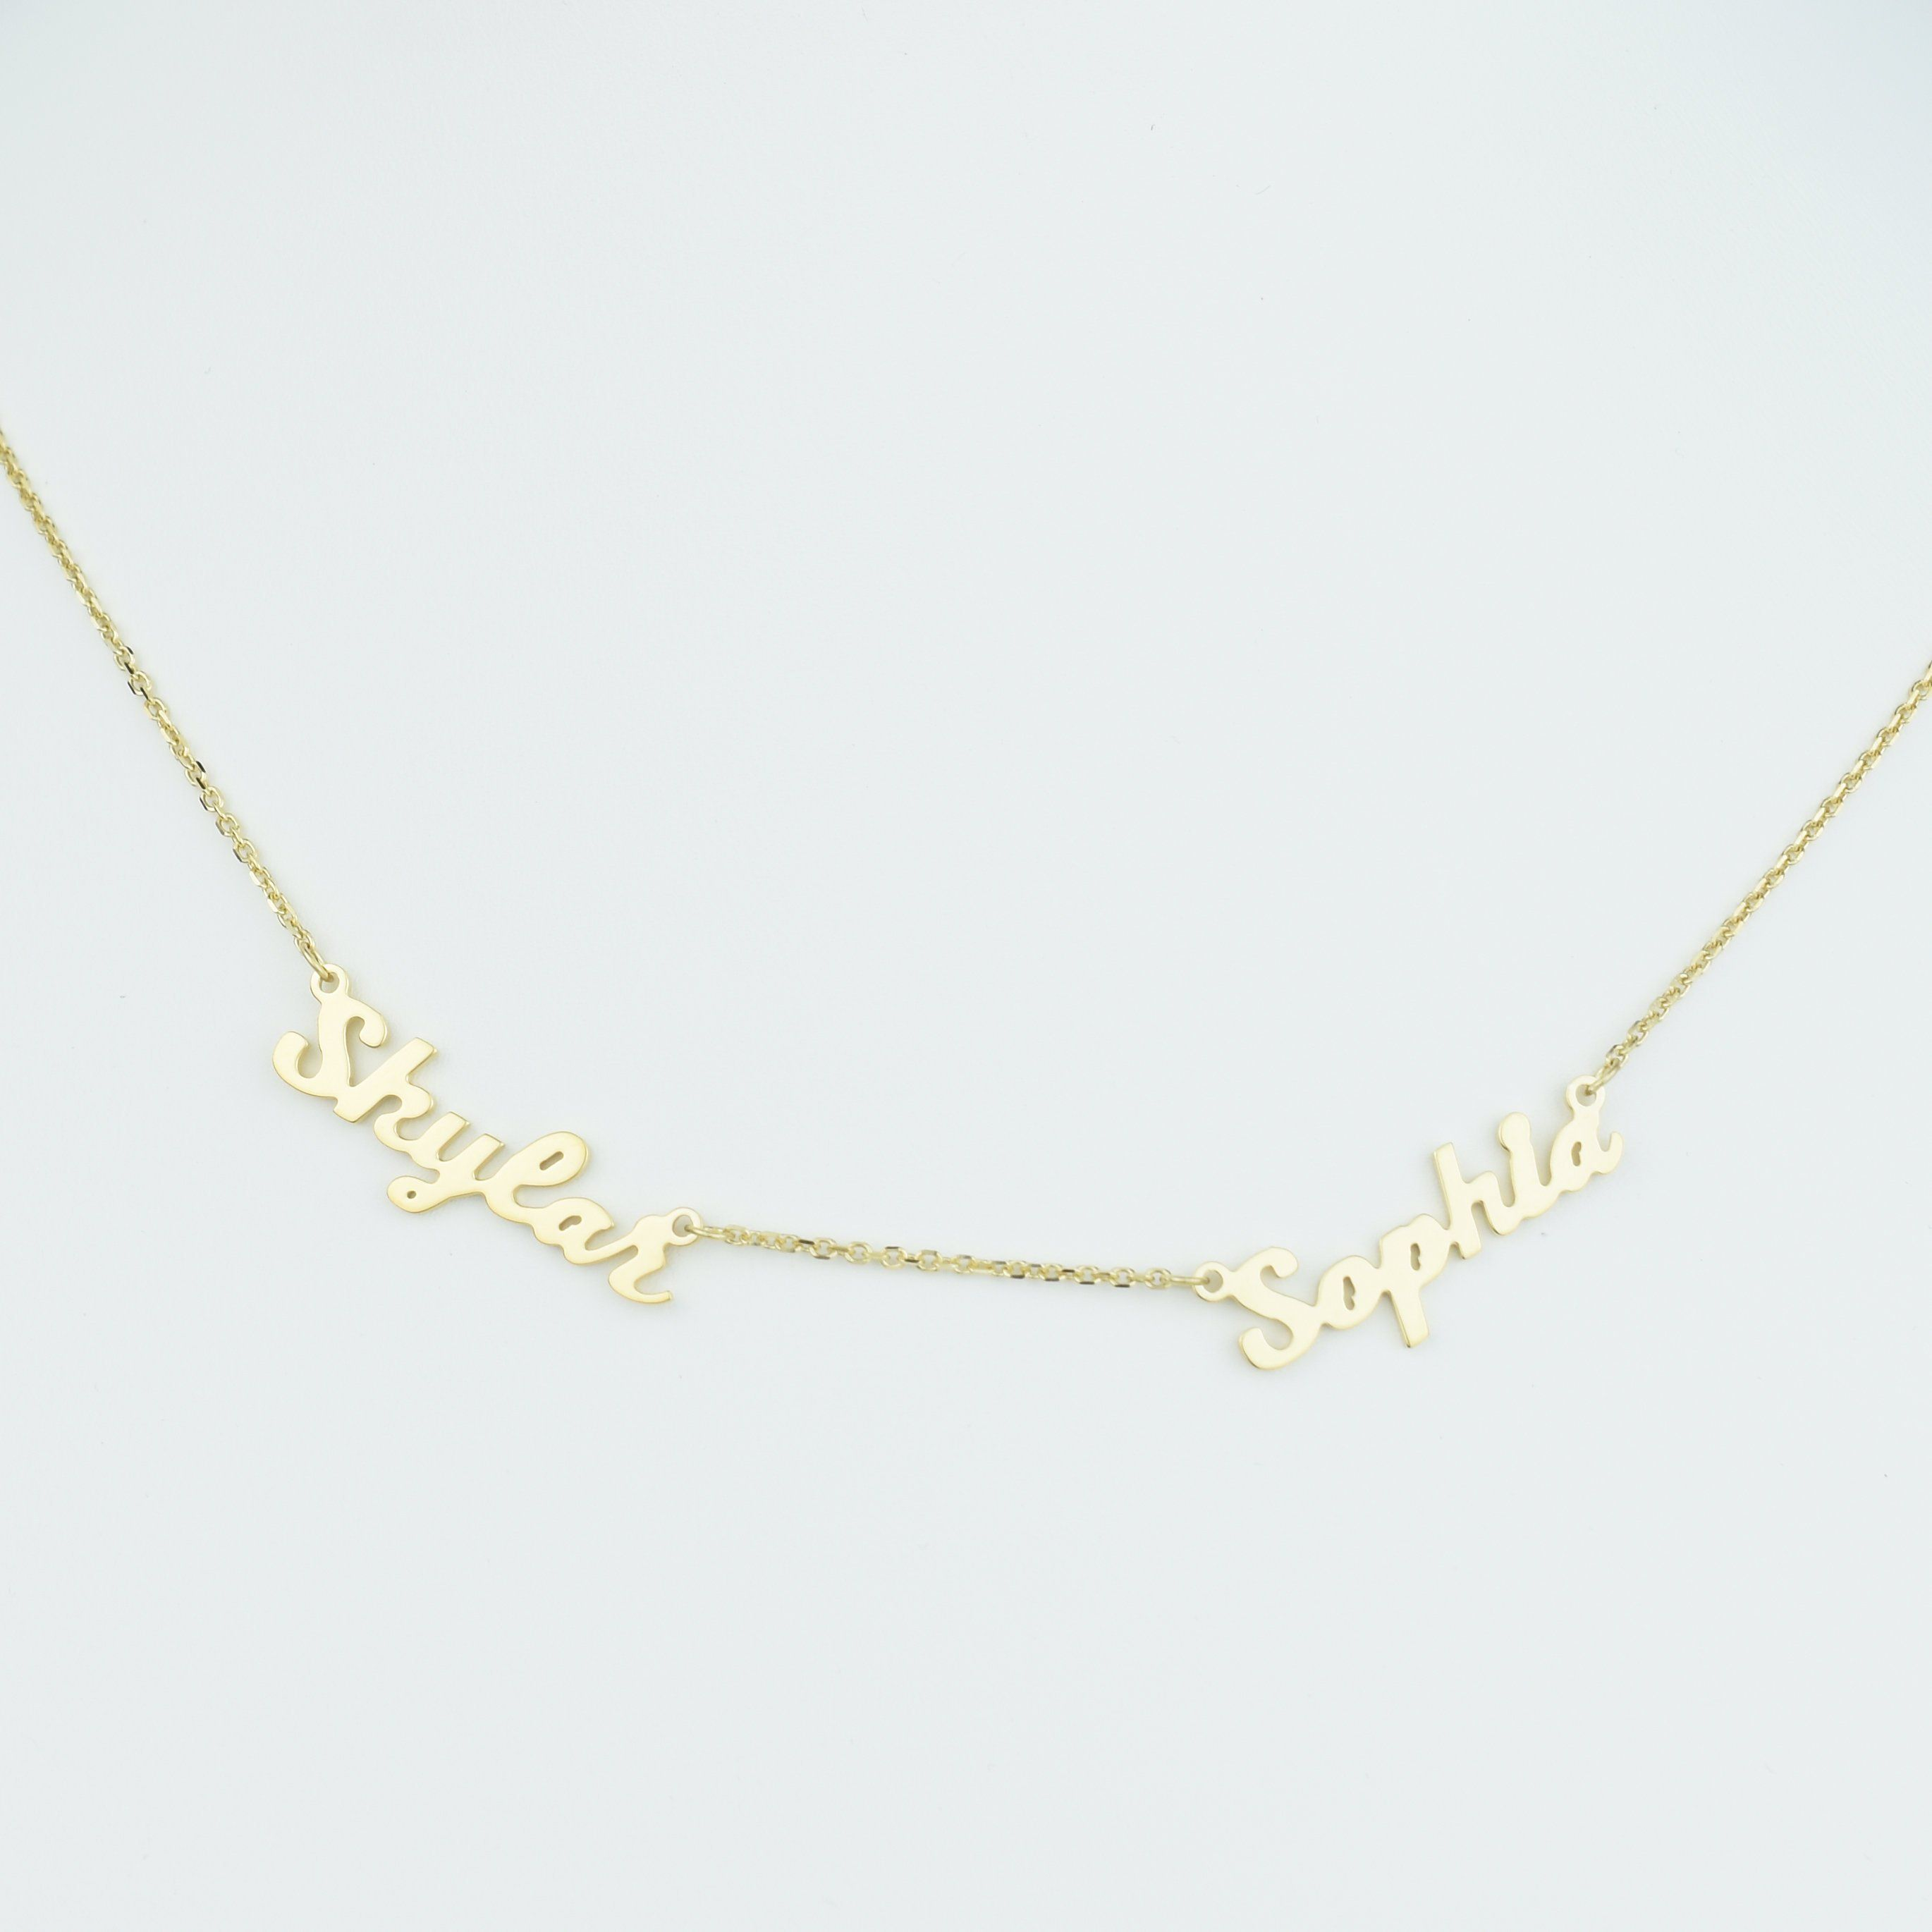 3dae8aa2f034b Two Name Necklace, Dainty Name Necklace for Her, Personalized Name ...